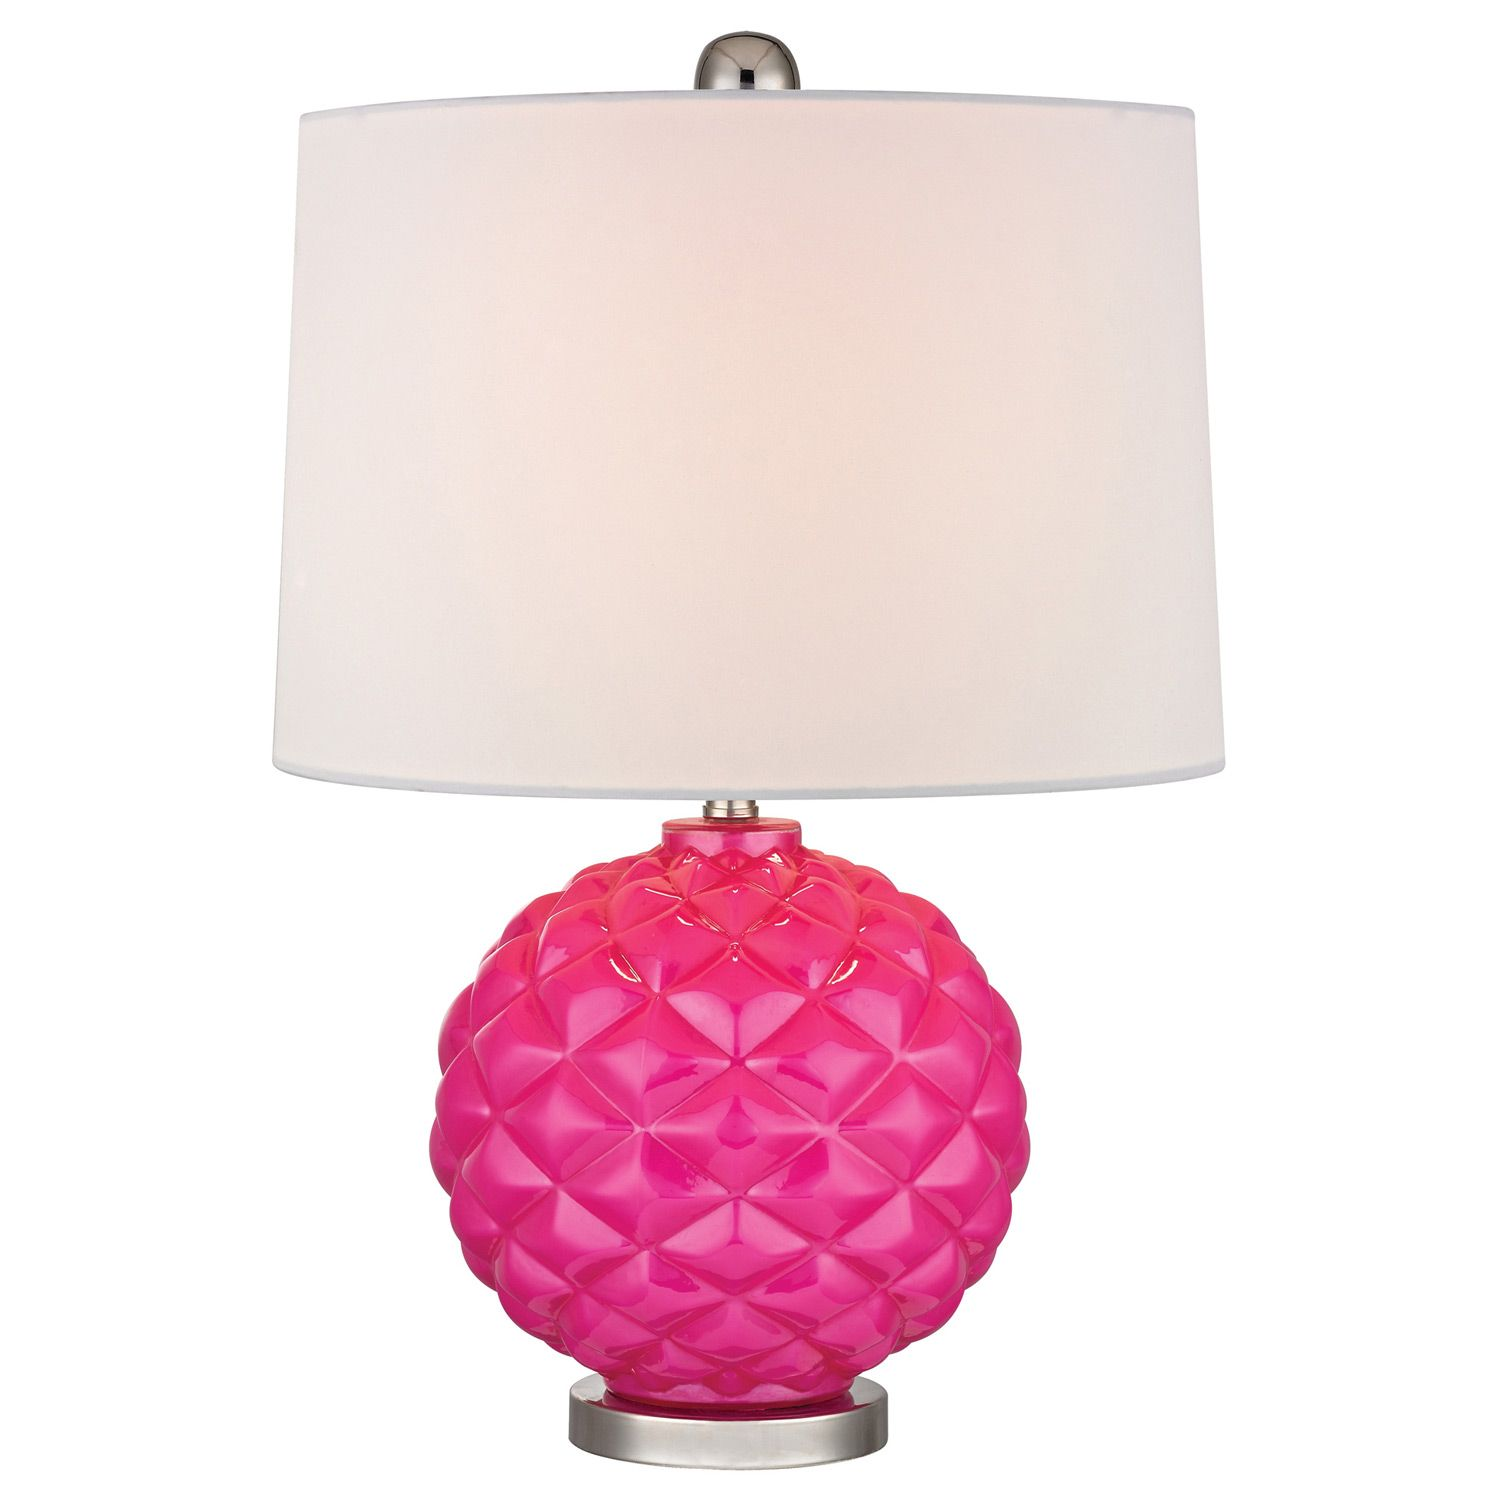 Hot pink textured glass table lamp apartment pinterest hot pink textured glass table lamp geotapseo Choice Image